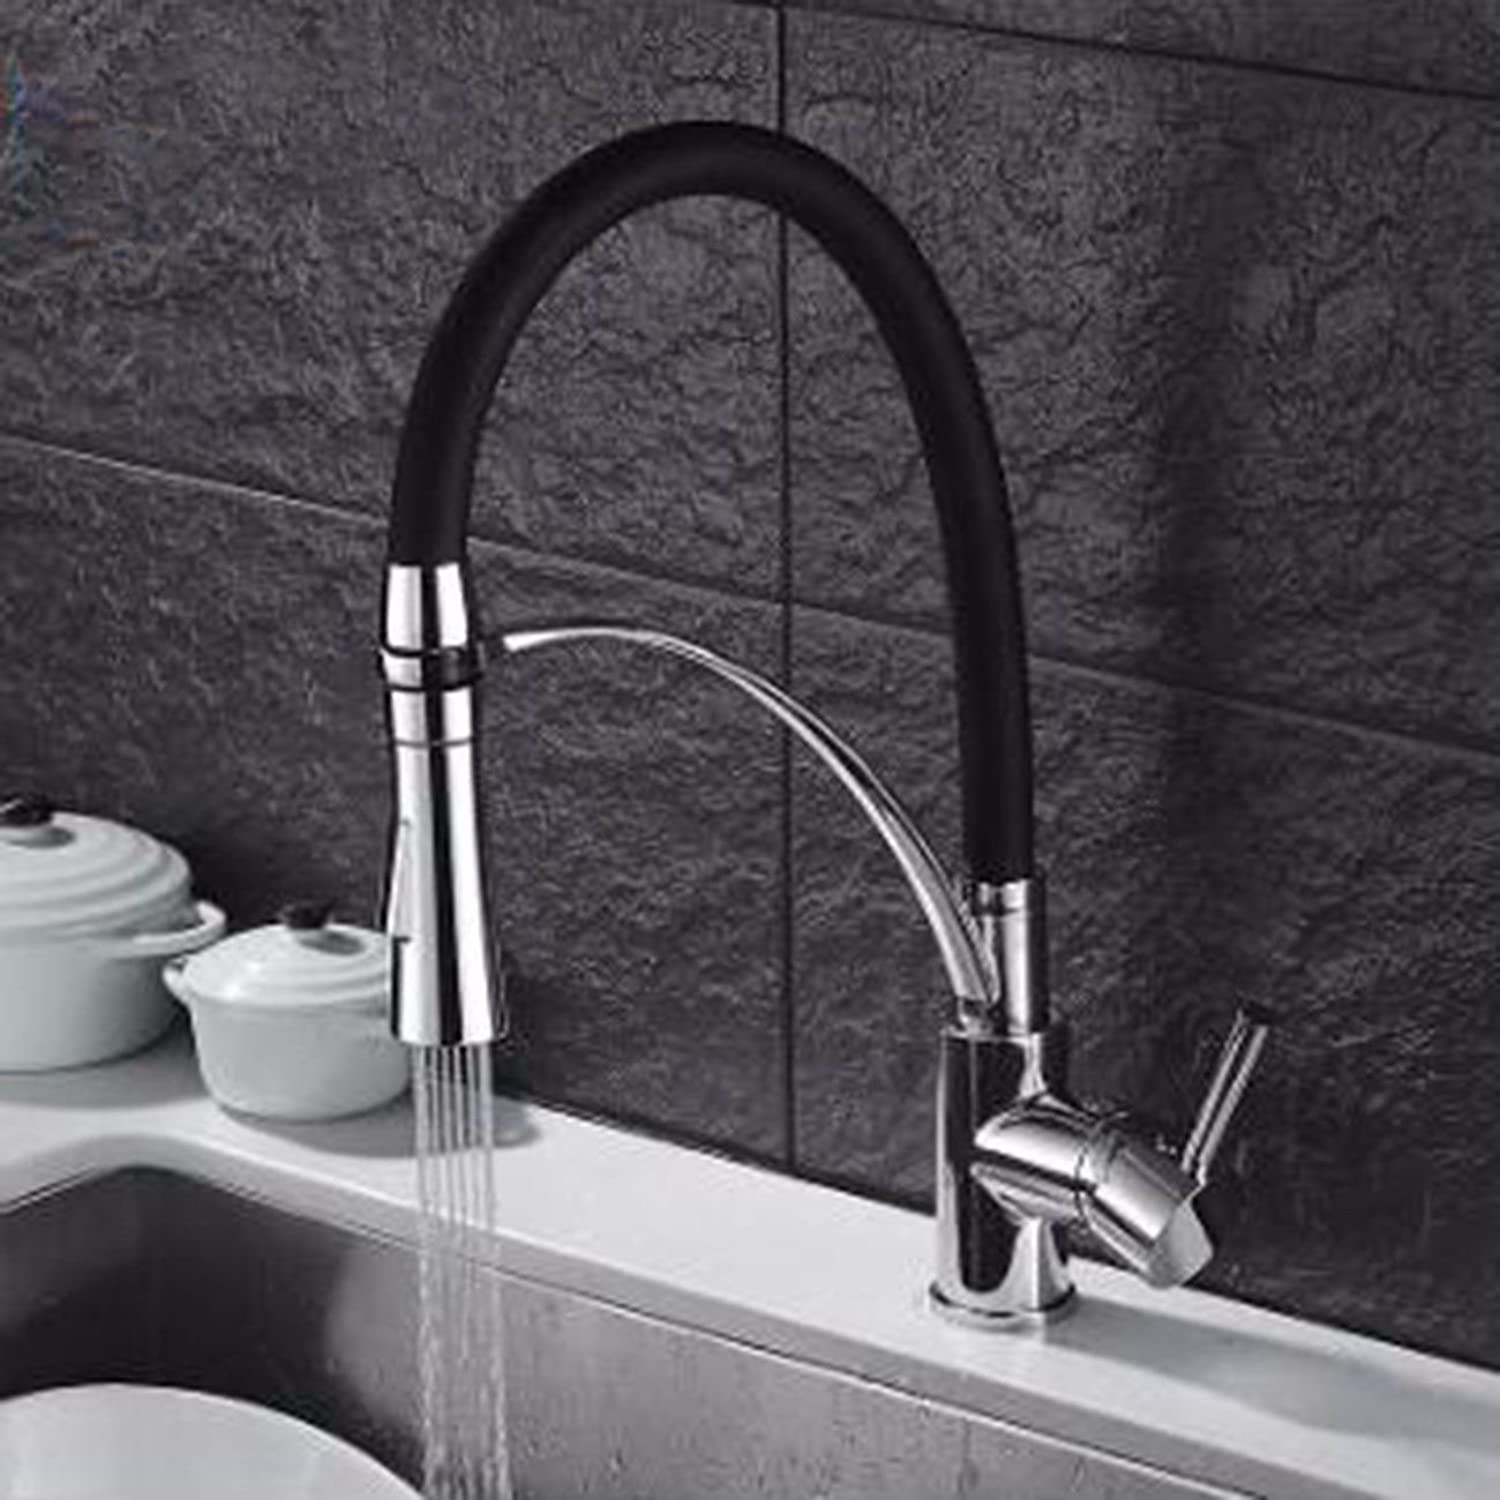 JFBZS-kitchen sink taps Personalized Creative Water Faucet Kitchen Washing Basin Faucet Faucet Shower Water